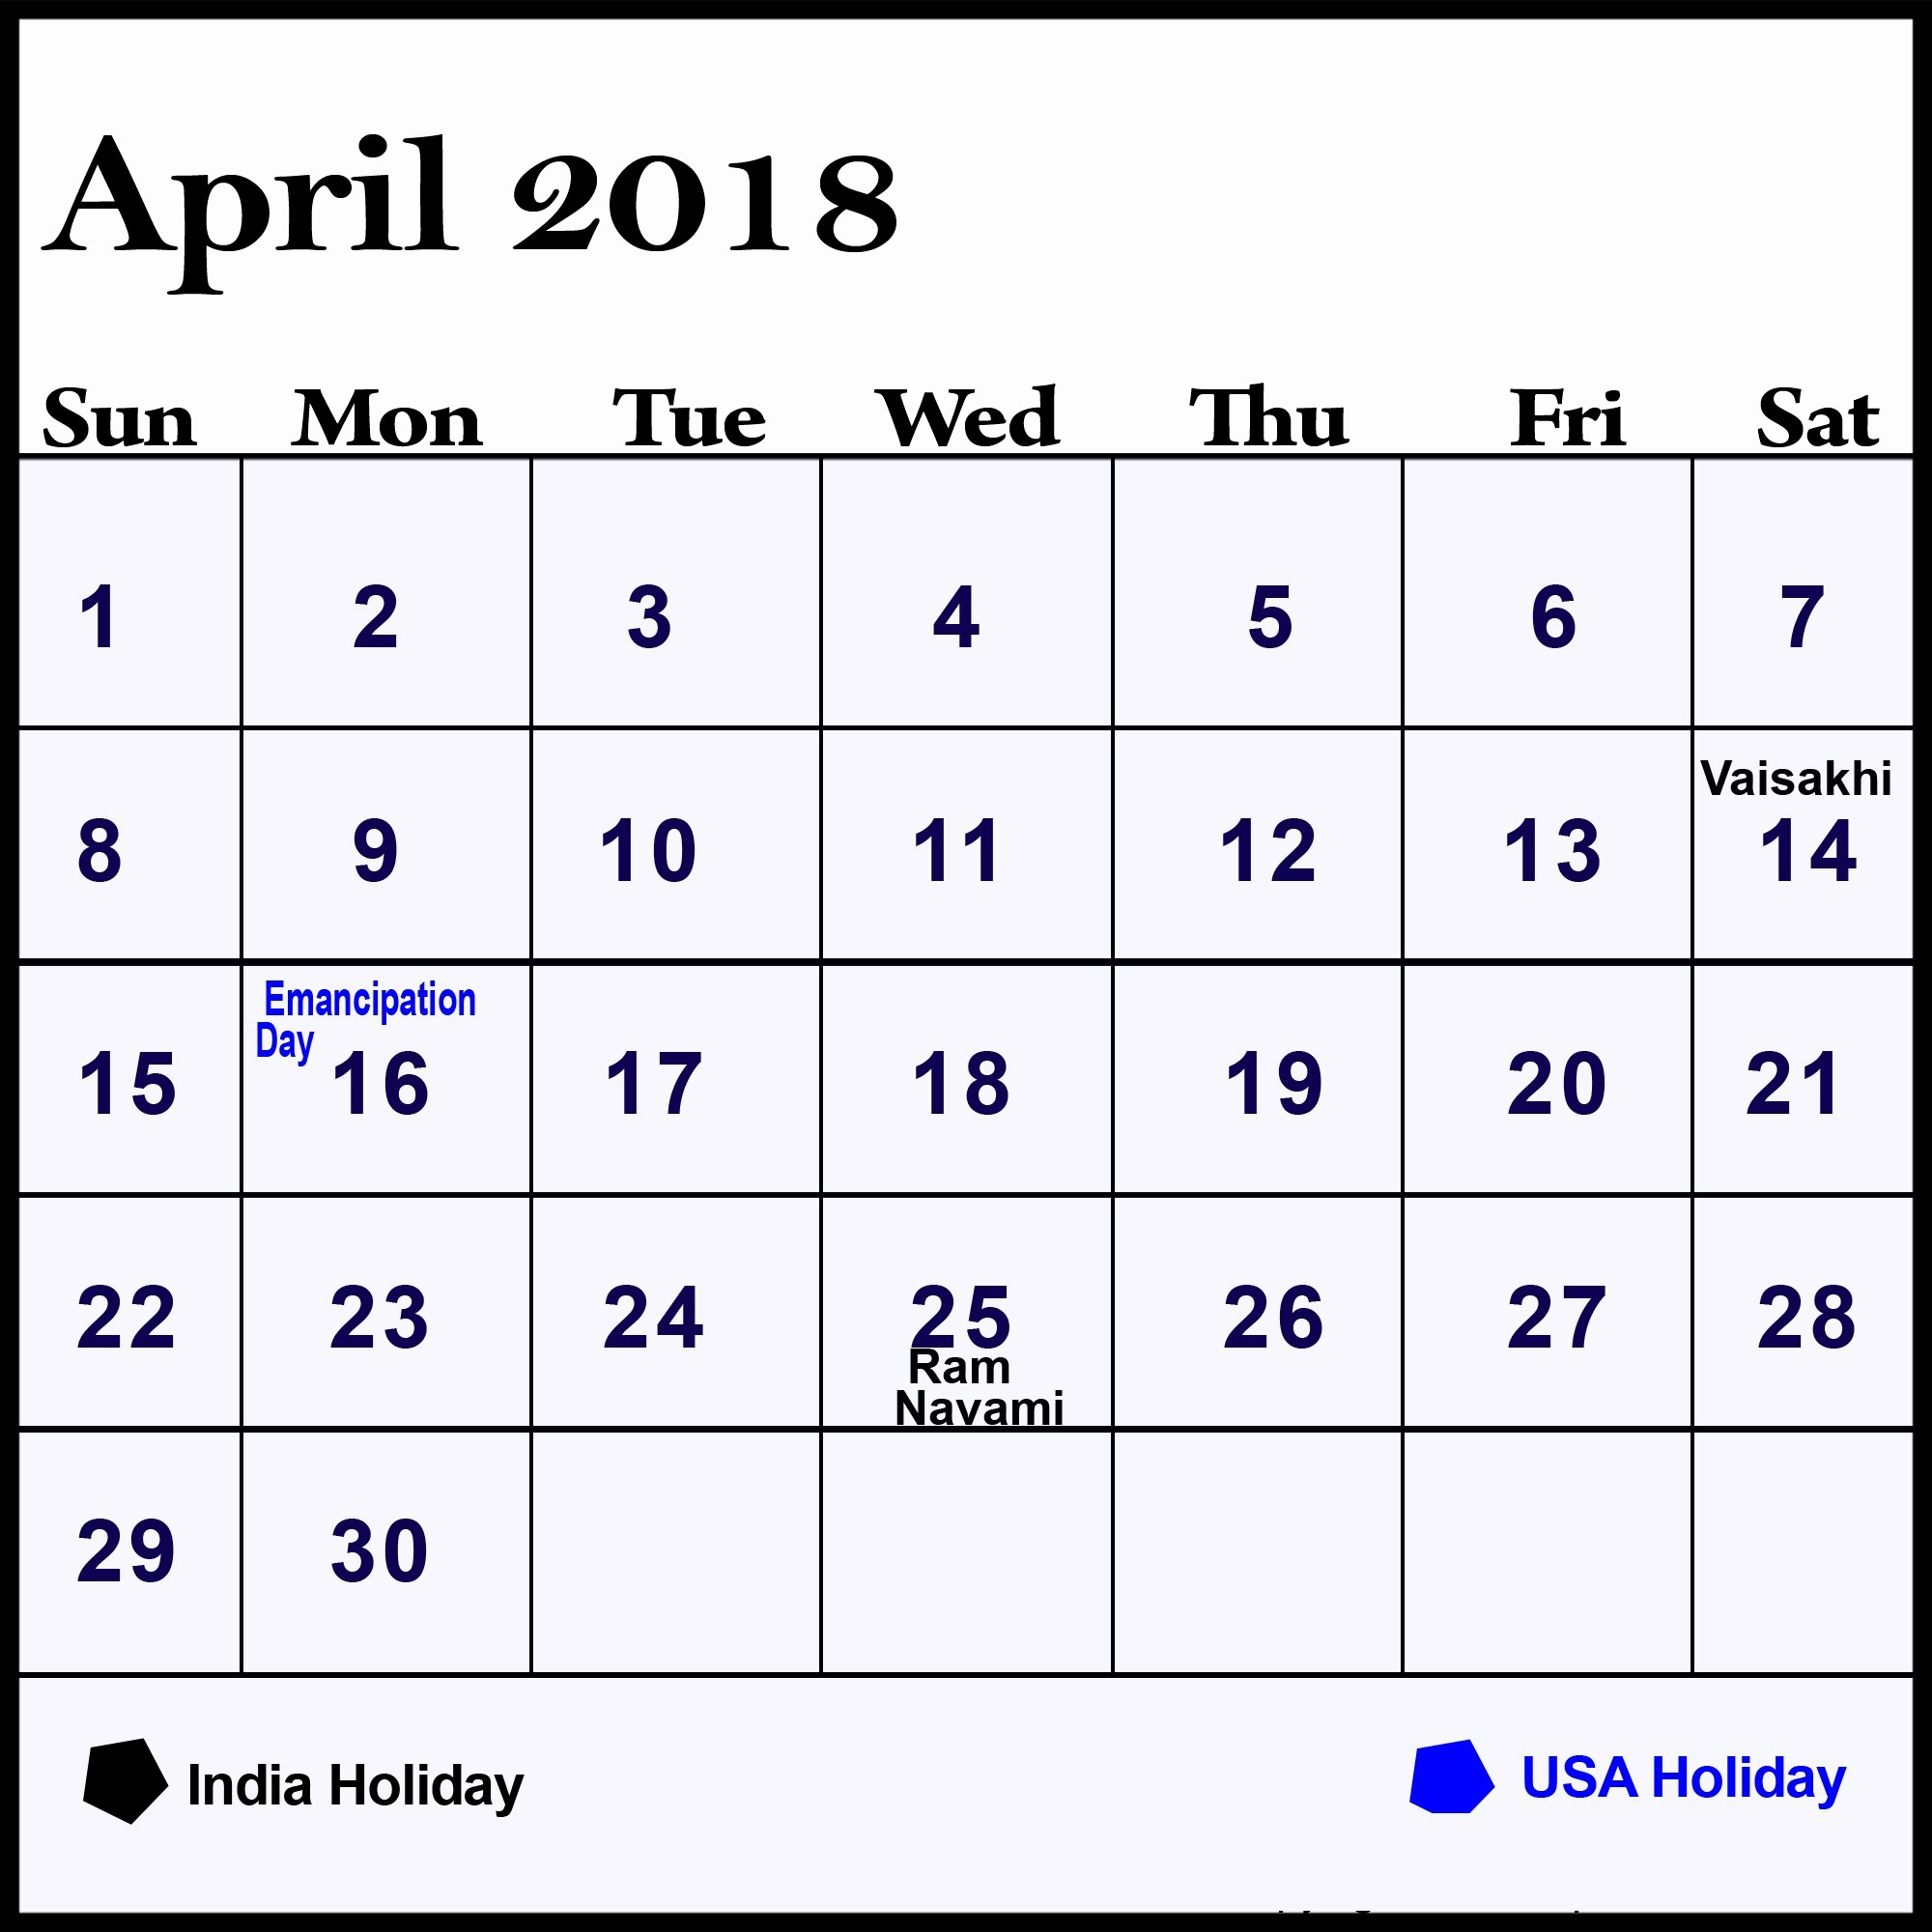 Calendar 2018 Printable with Holidays Luxury April 2018 Calendar Holidays February 2019 Calendar